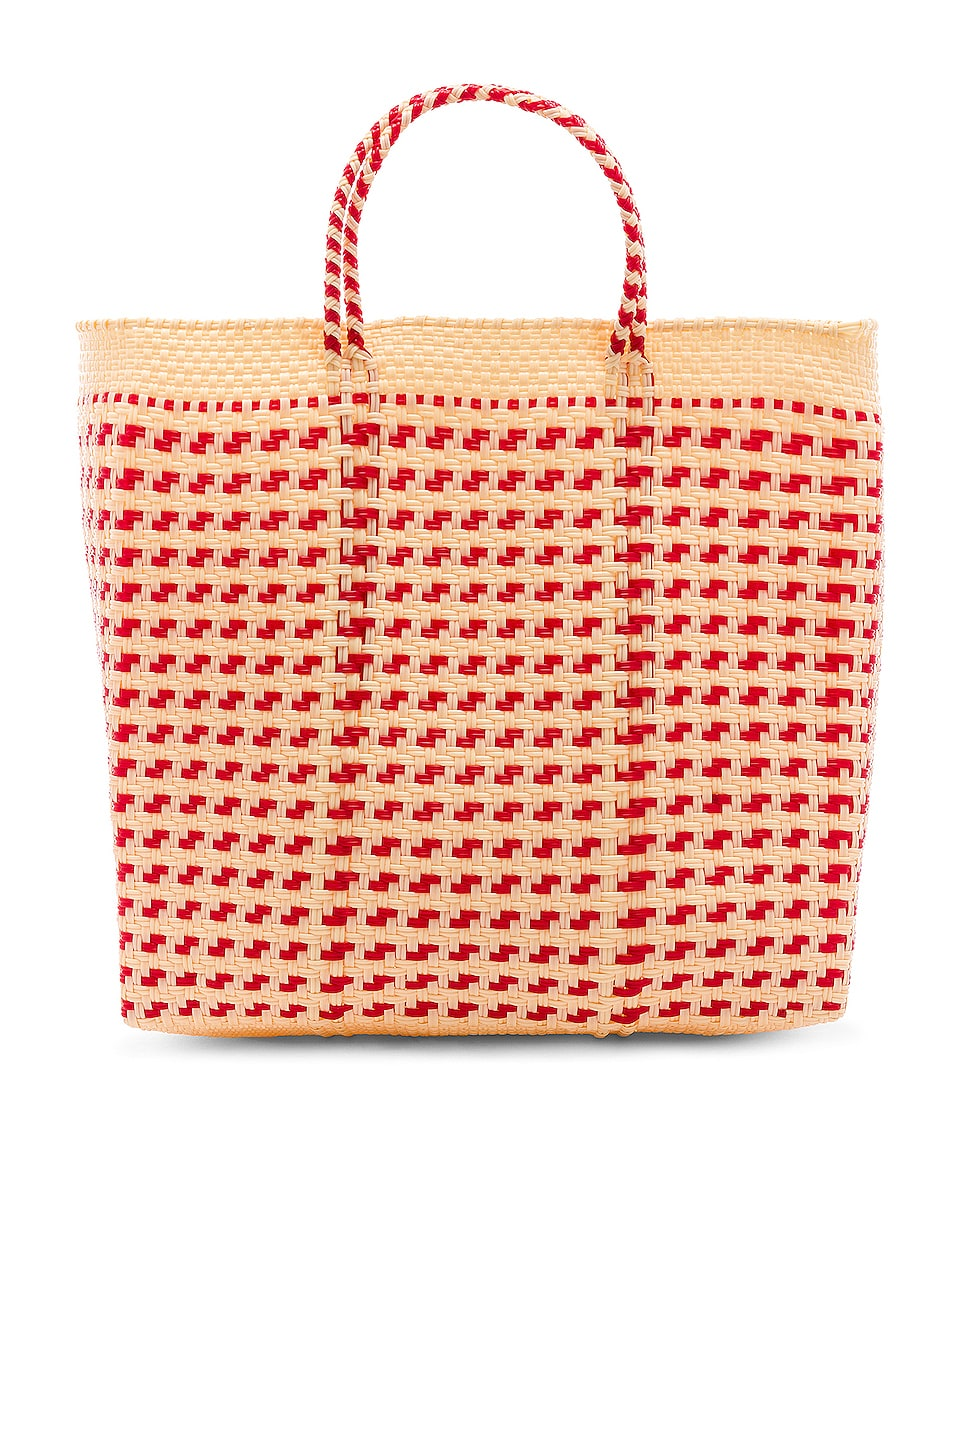 House of Harlow 1960 X REVOLVE Cenote Tote in Red Multi